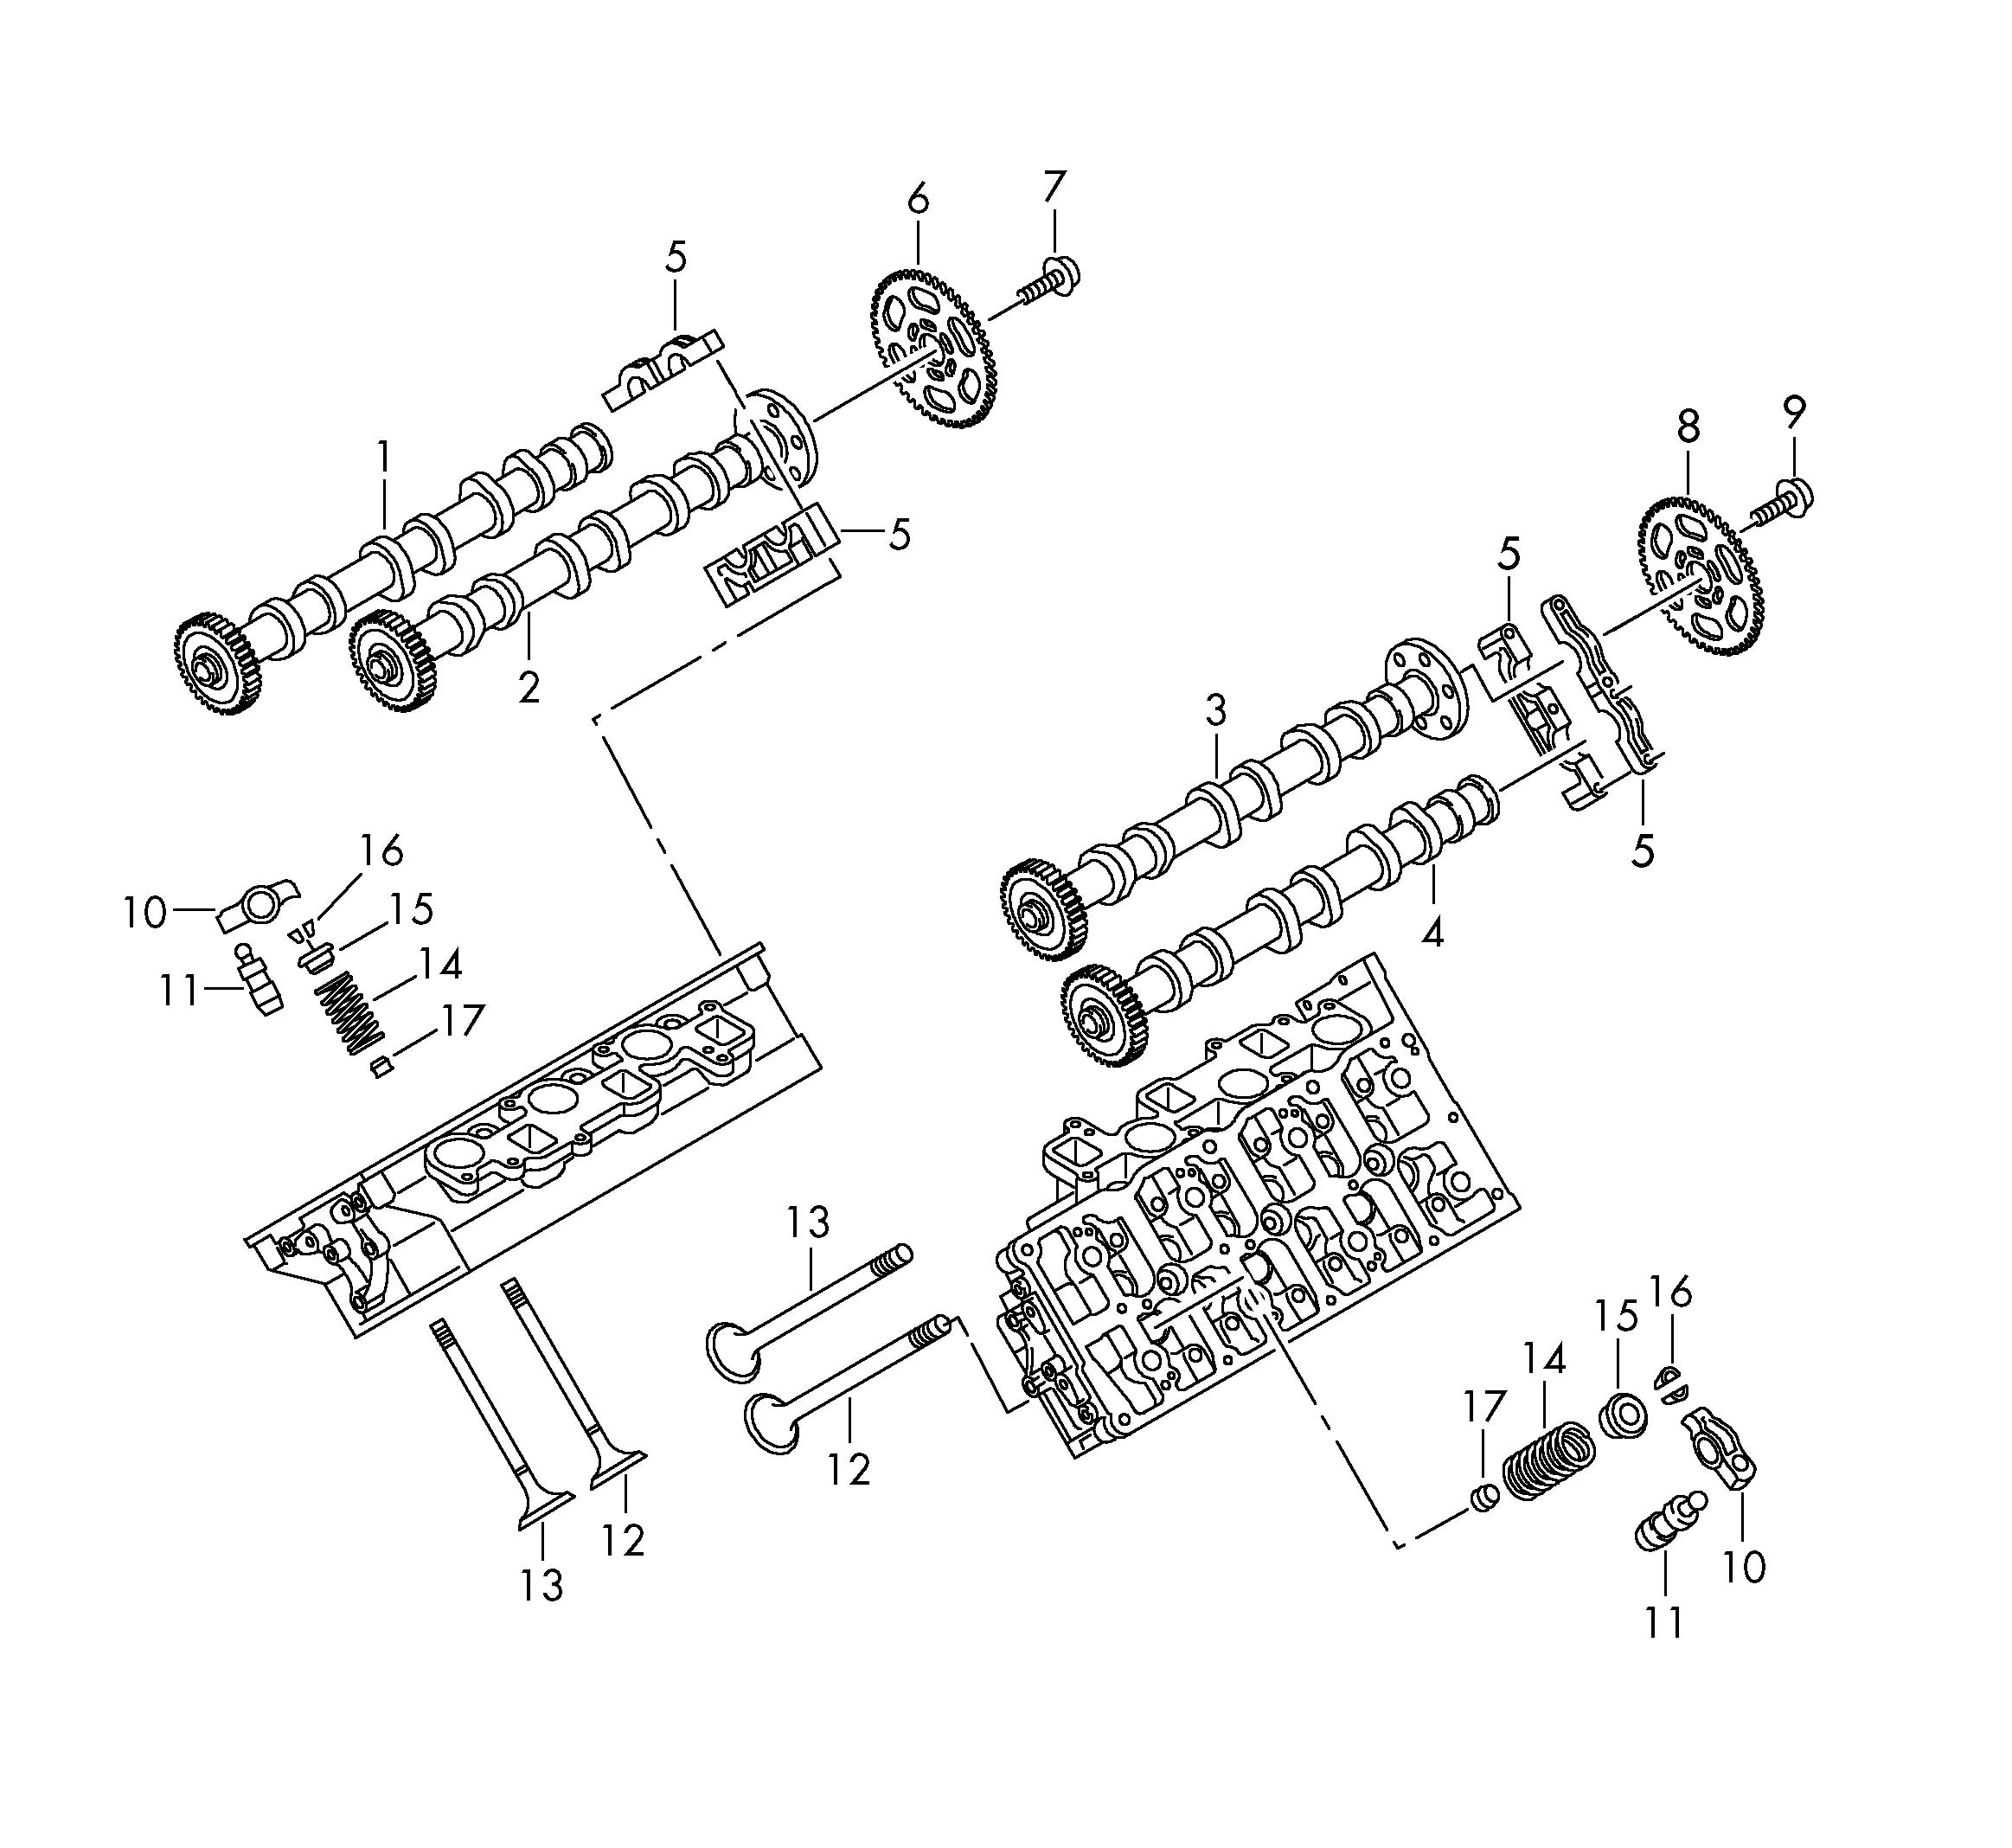 wiring diagram for 1980 vw rabbit  diagram  auto wiring